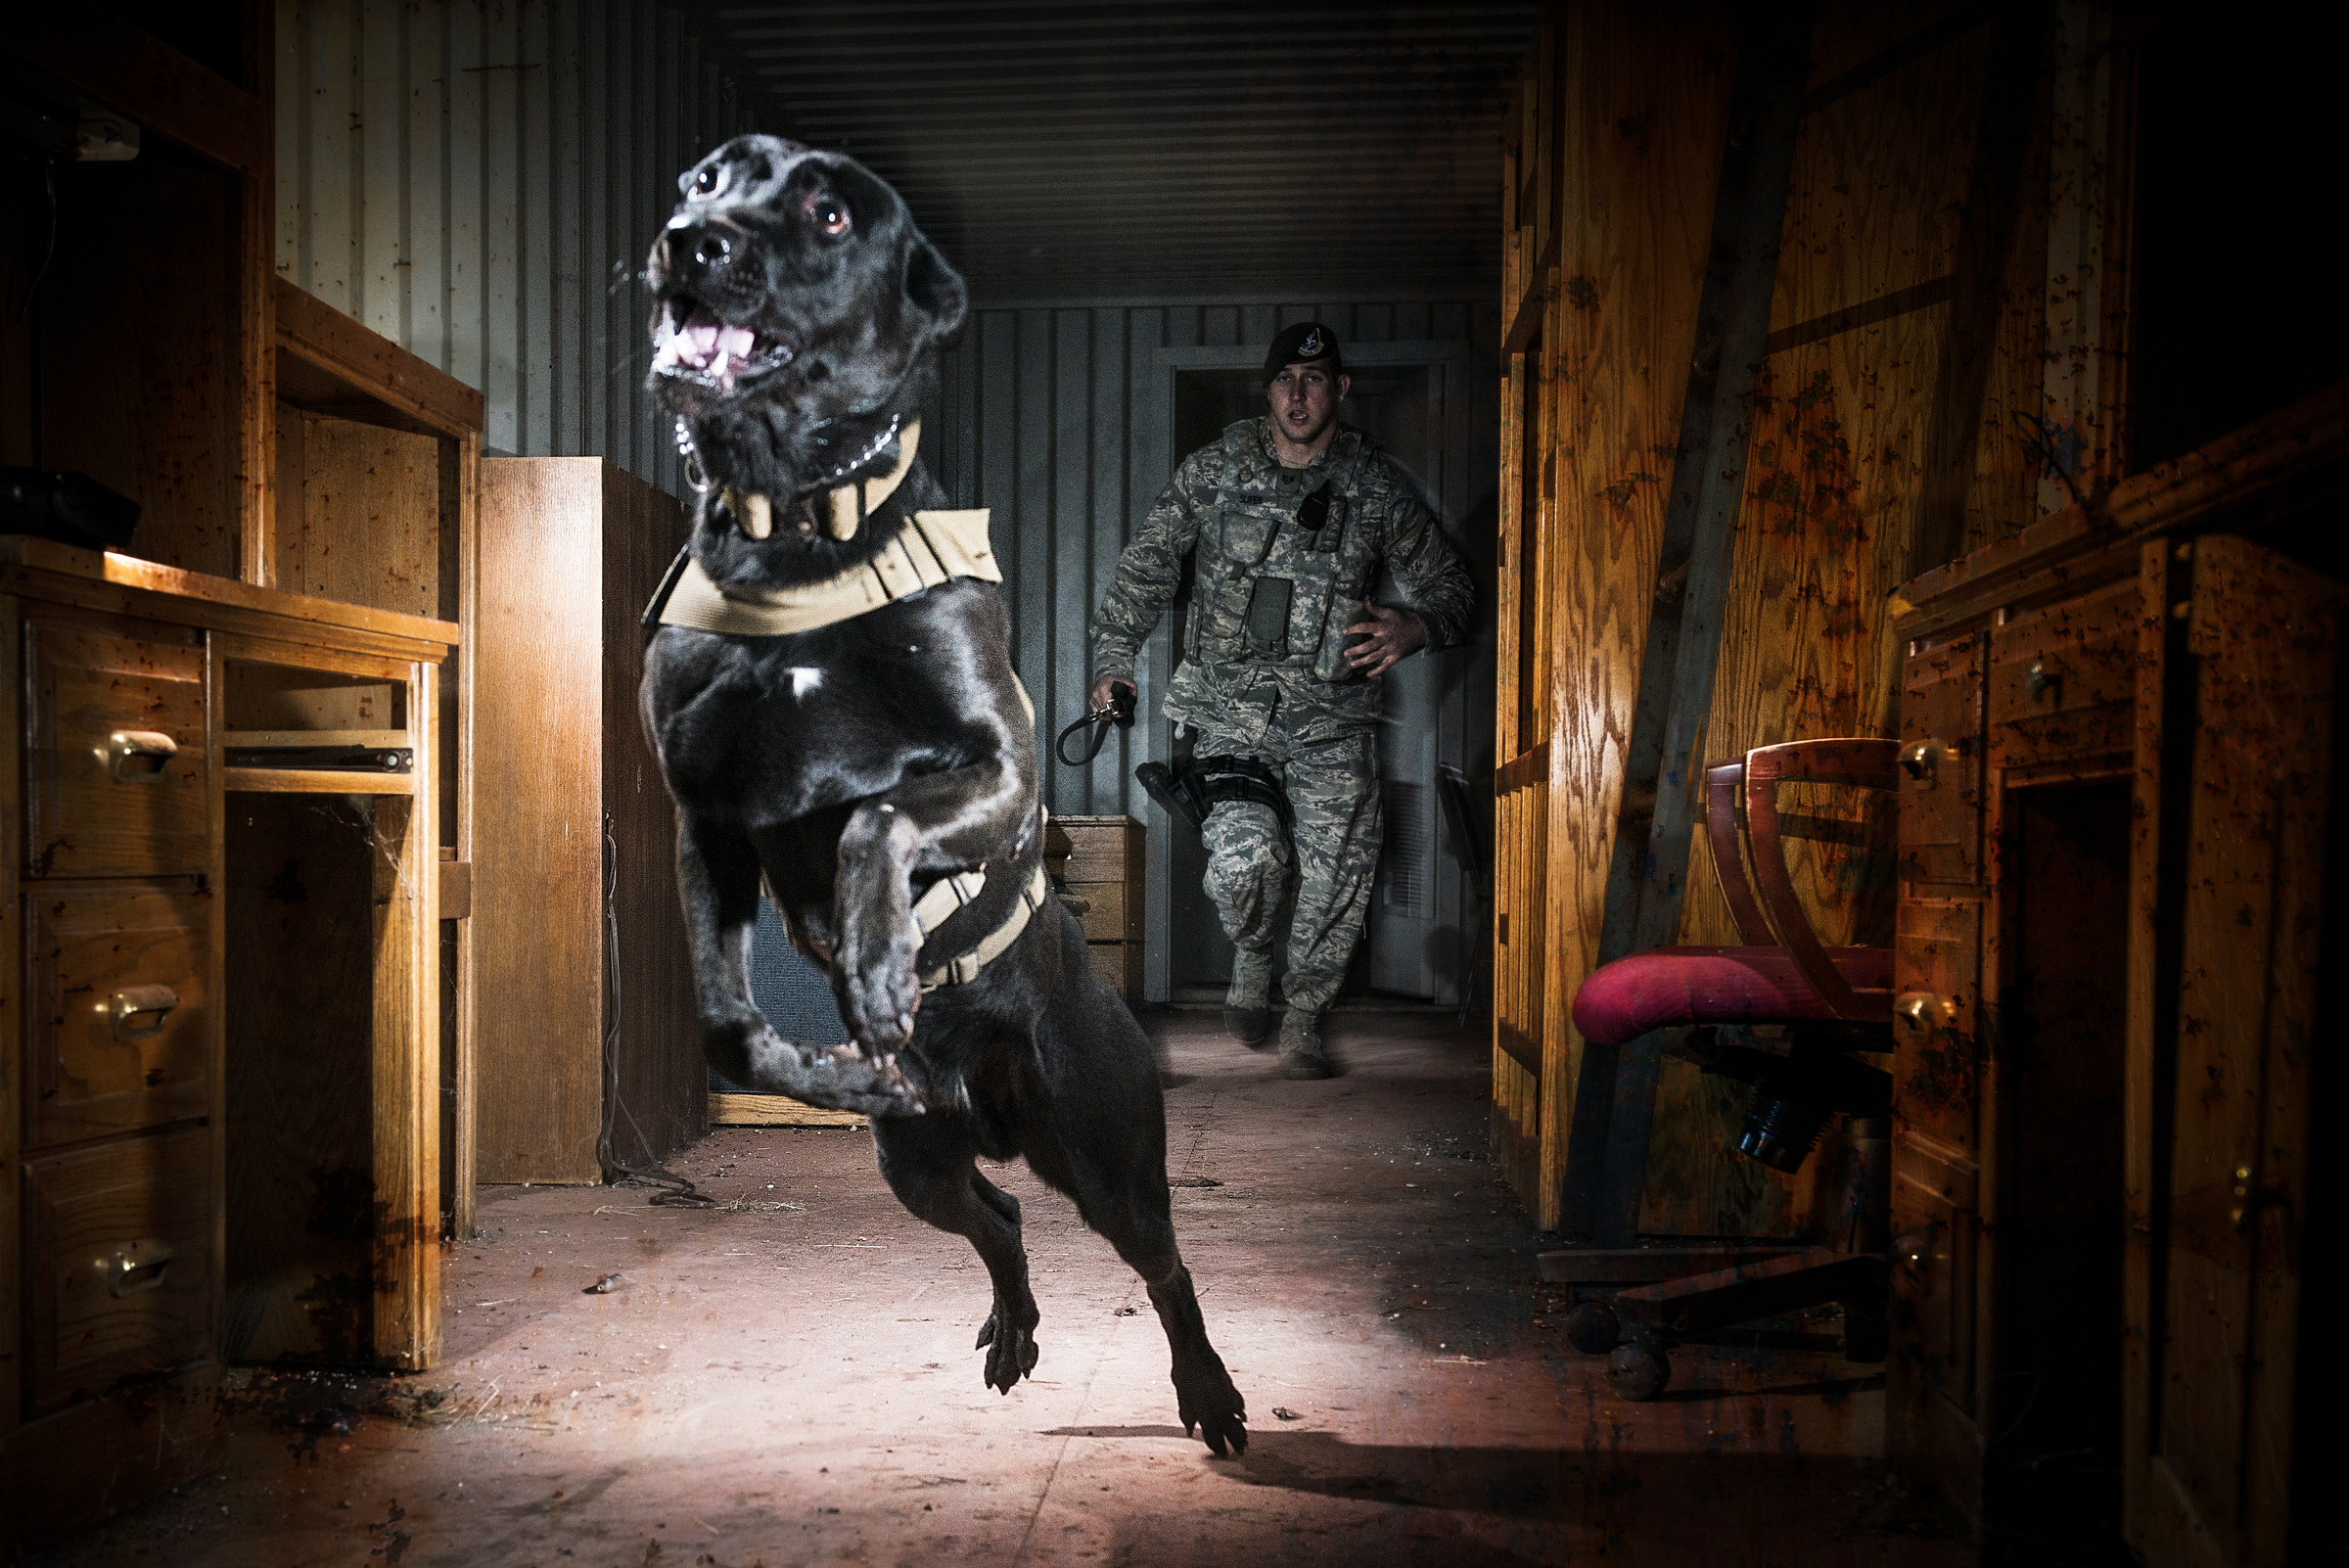 An Air Force Security Forces K-9 handler, and his military working dog, track an armed assailant into a trailer home and prepare to take the perpetrator down by force during clearing a training operation in San Antonio, Texas. 2013 © Stacy L. Pearsall